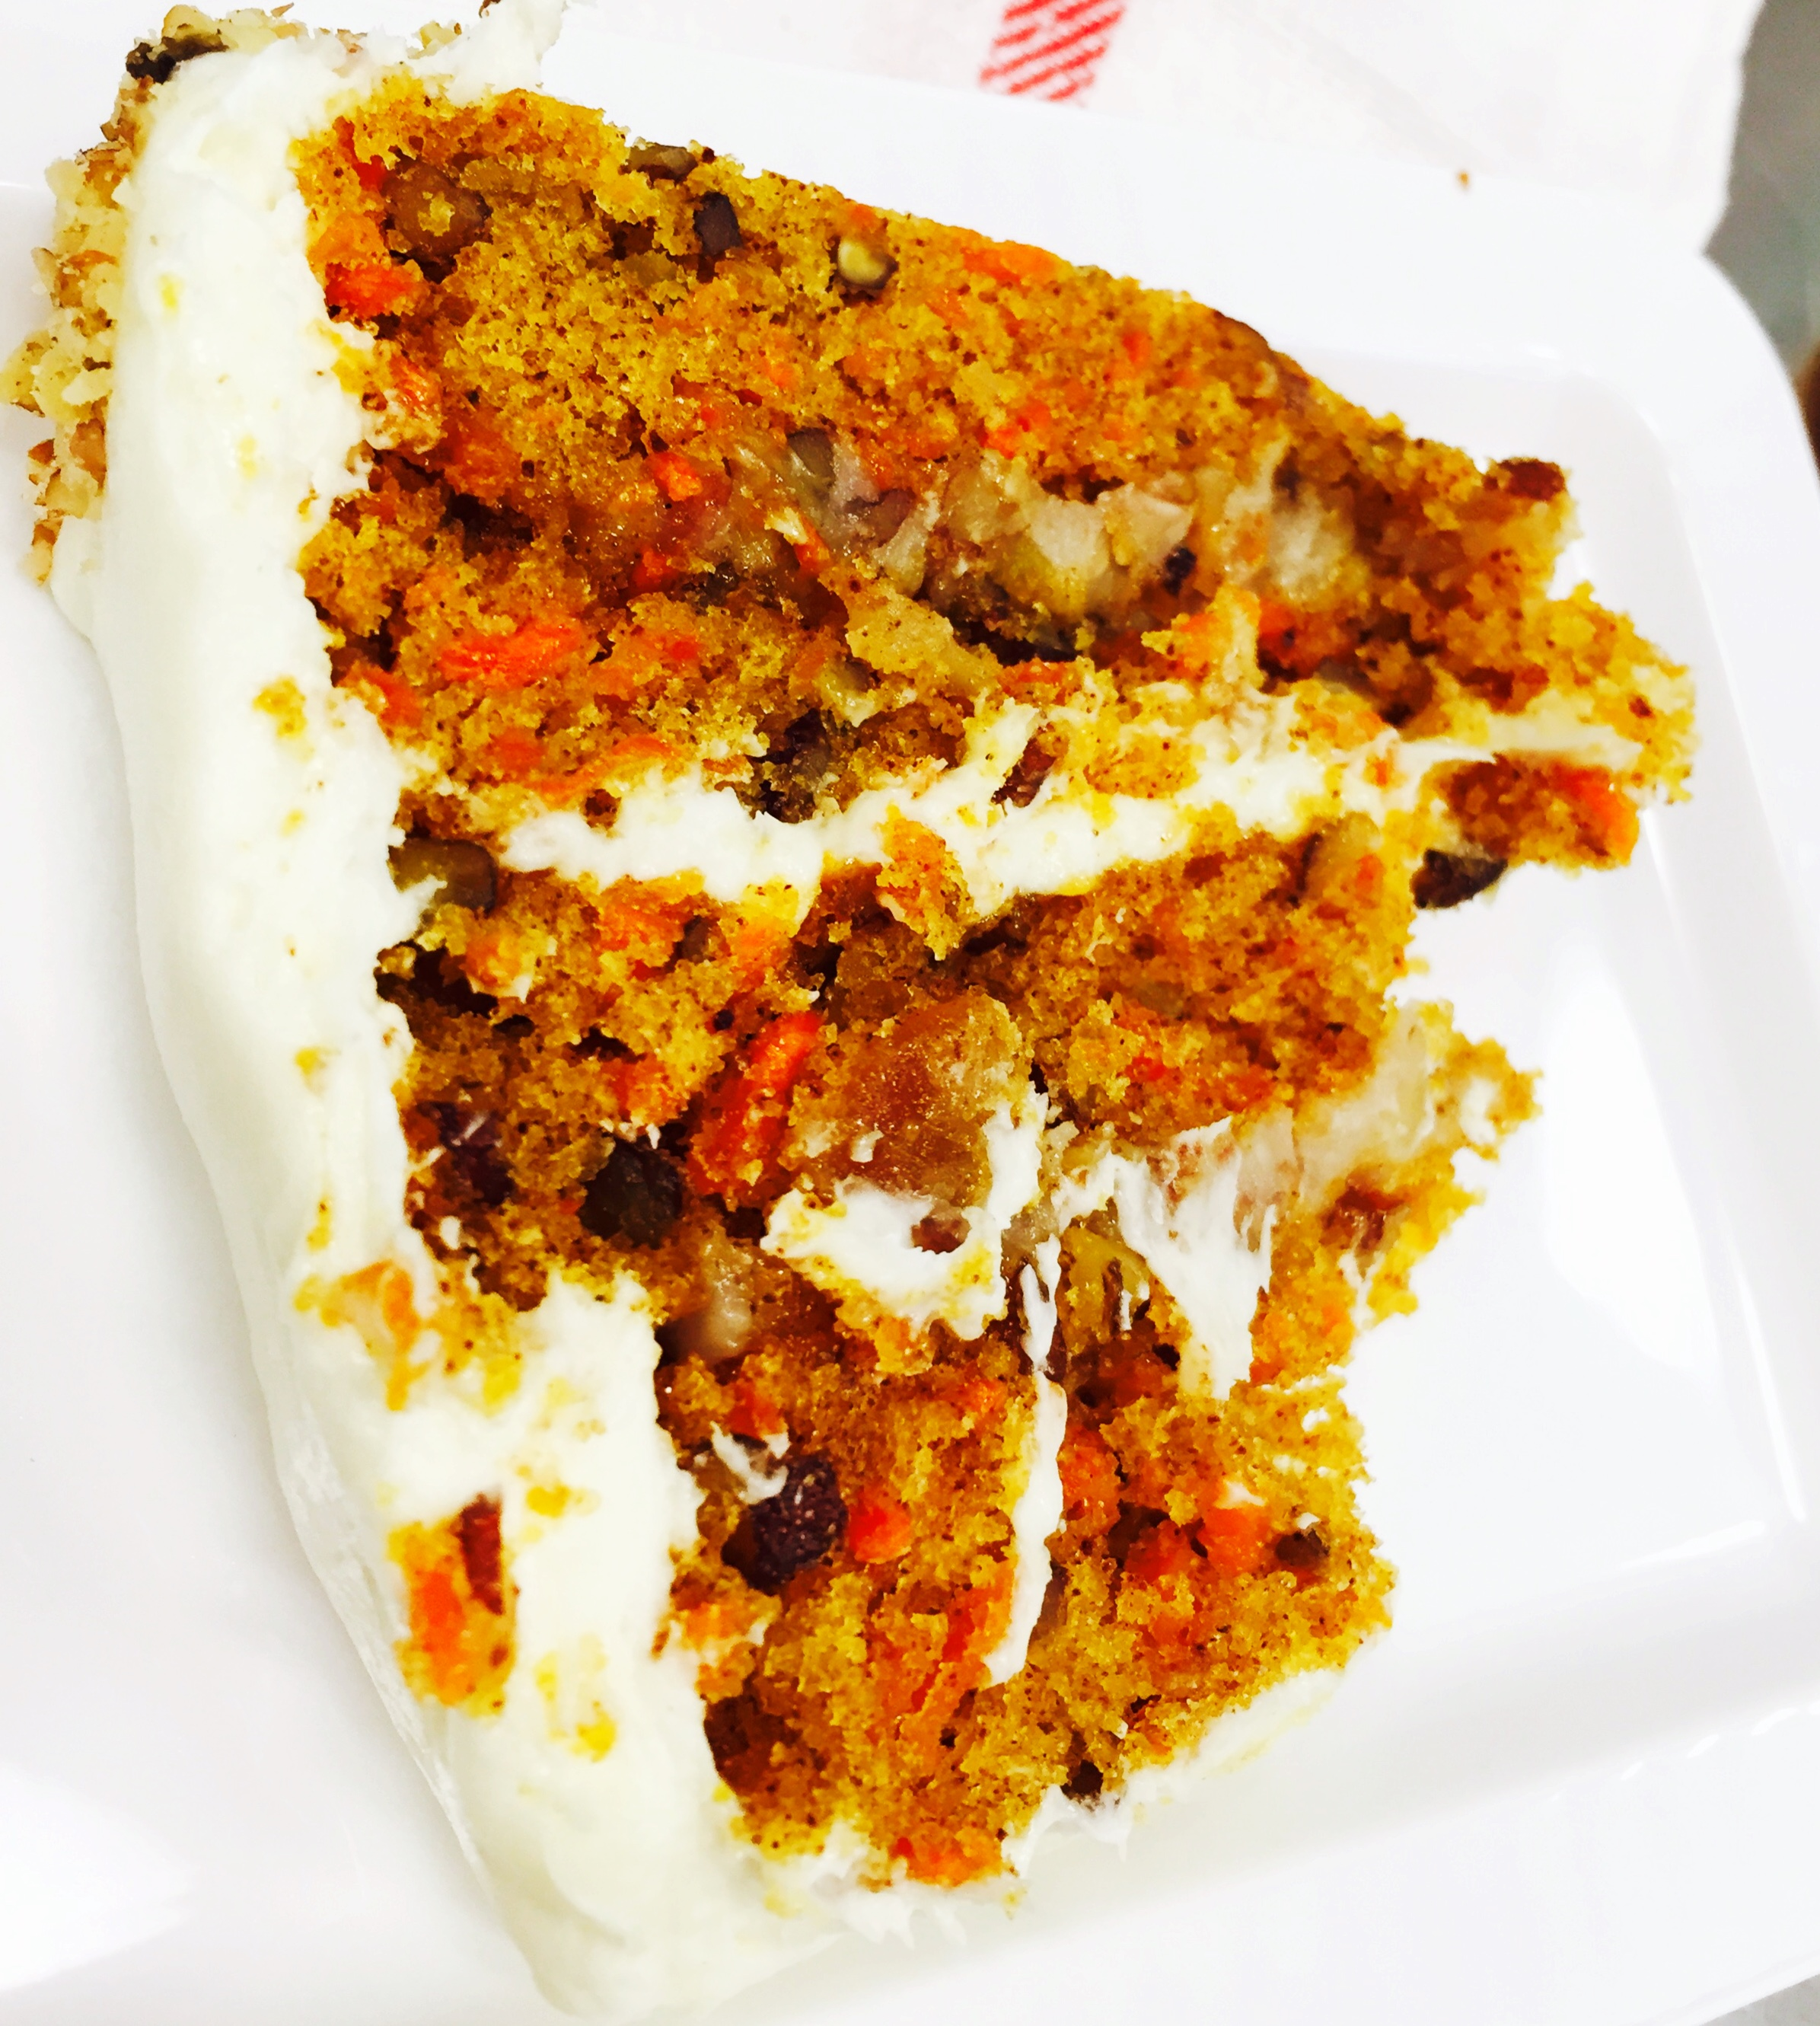 I'm not usually a carrot cake person, but this cake was amazing with its chunky praline filling, pecans and golden raisins topped with cream cheese frosting and bursts of cinnamon.